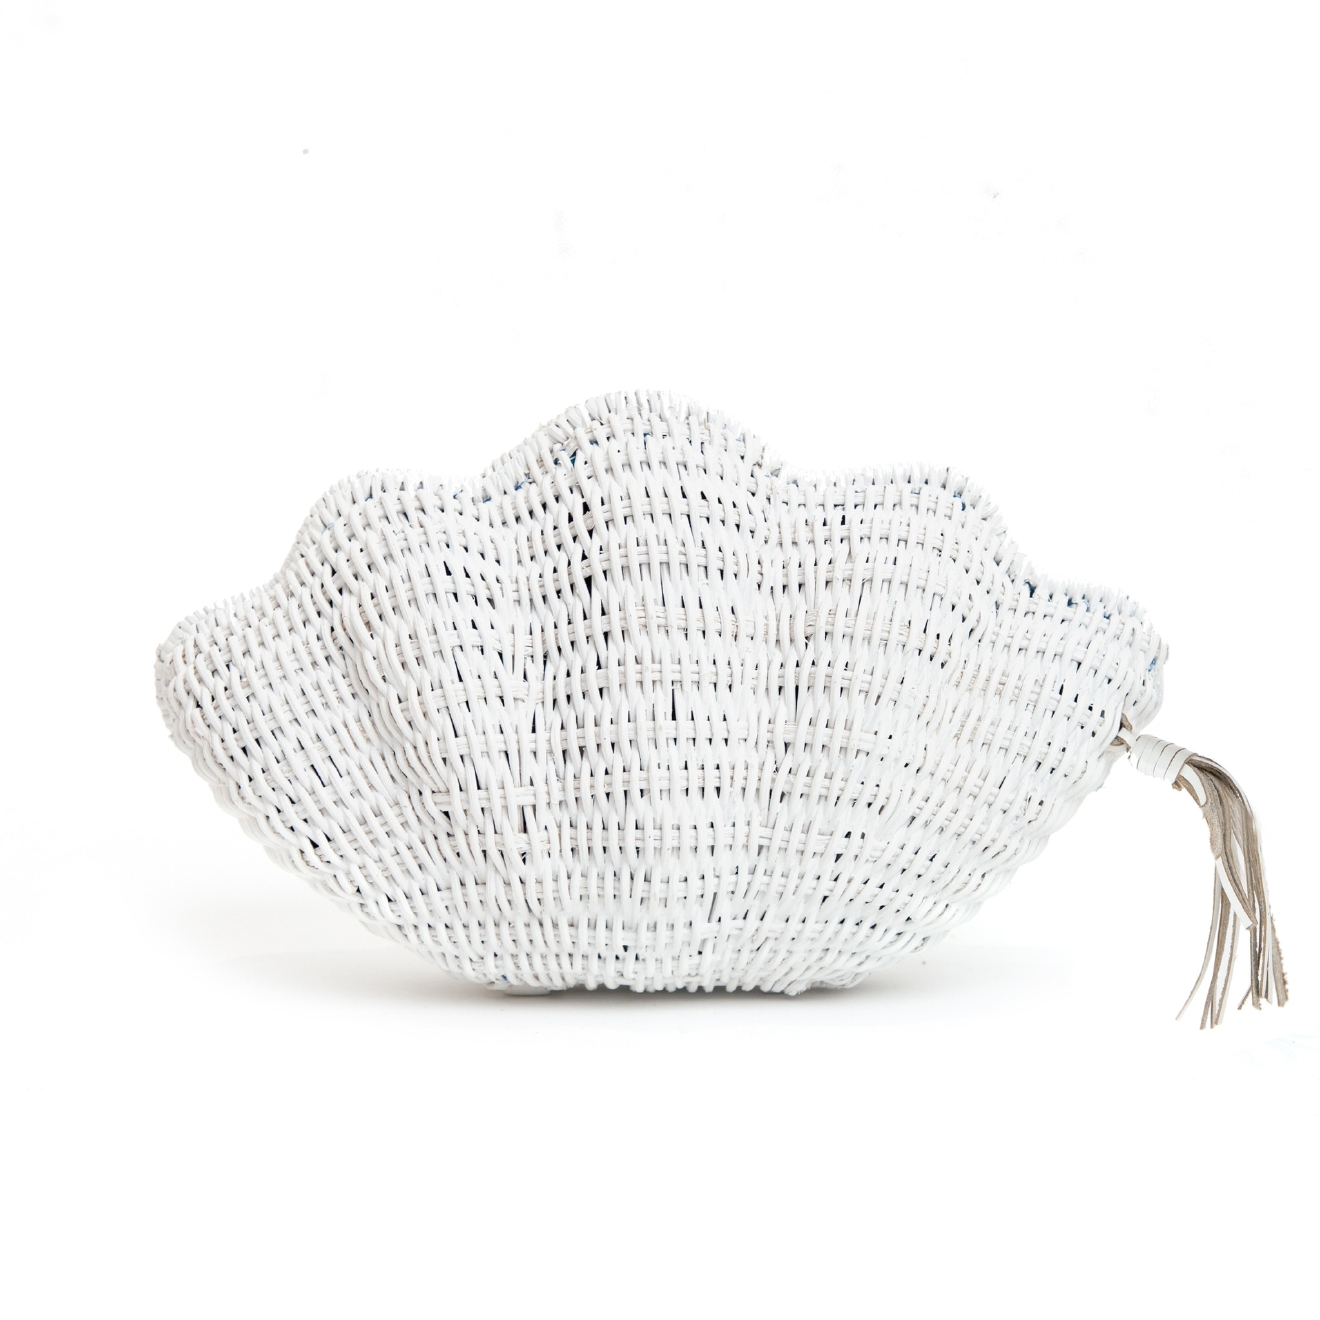 Kayu White Jane Straw Clutch, $185, tuckernuck.com (Image: Courtesy Tuckernuck)